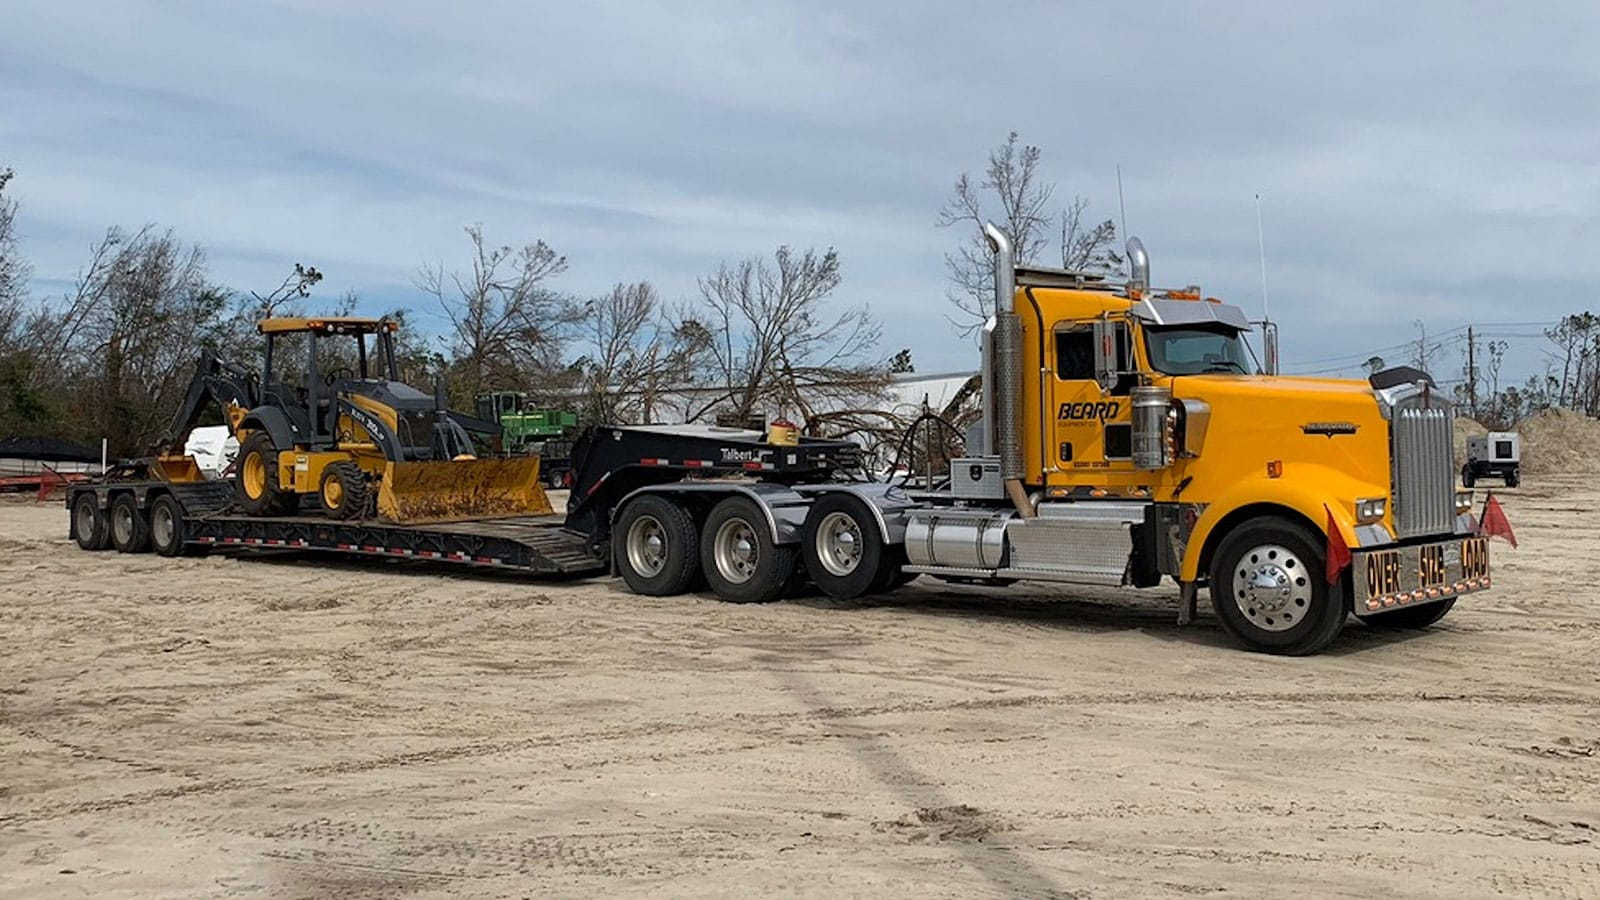 L-Series backhoe on a trailer behind a truck for delivery to the impacted area